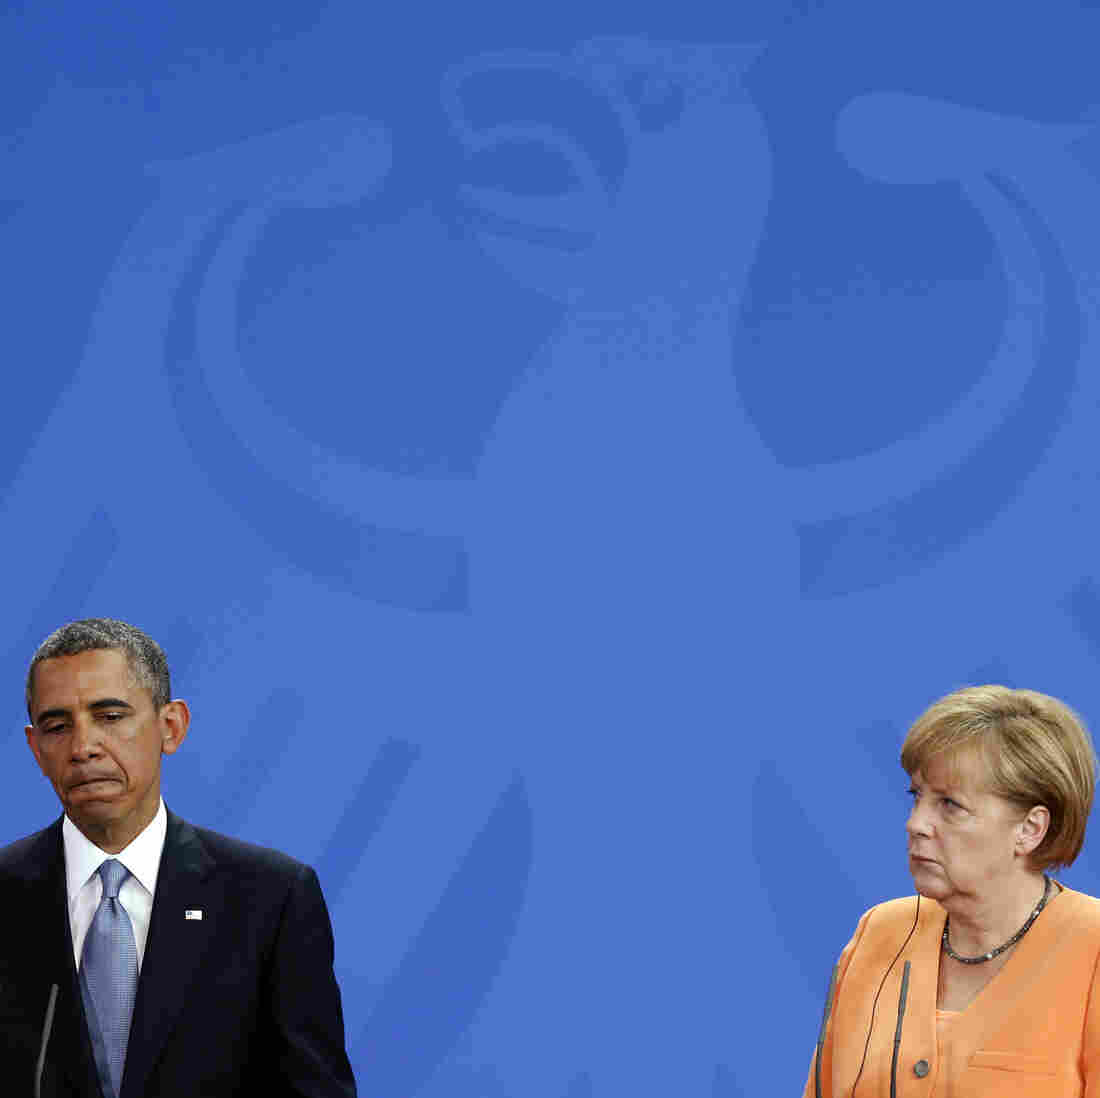 4 Things To Know About Spying On Allies